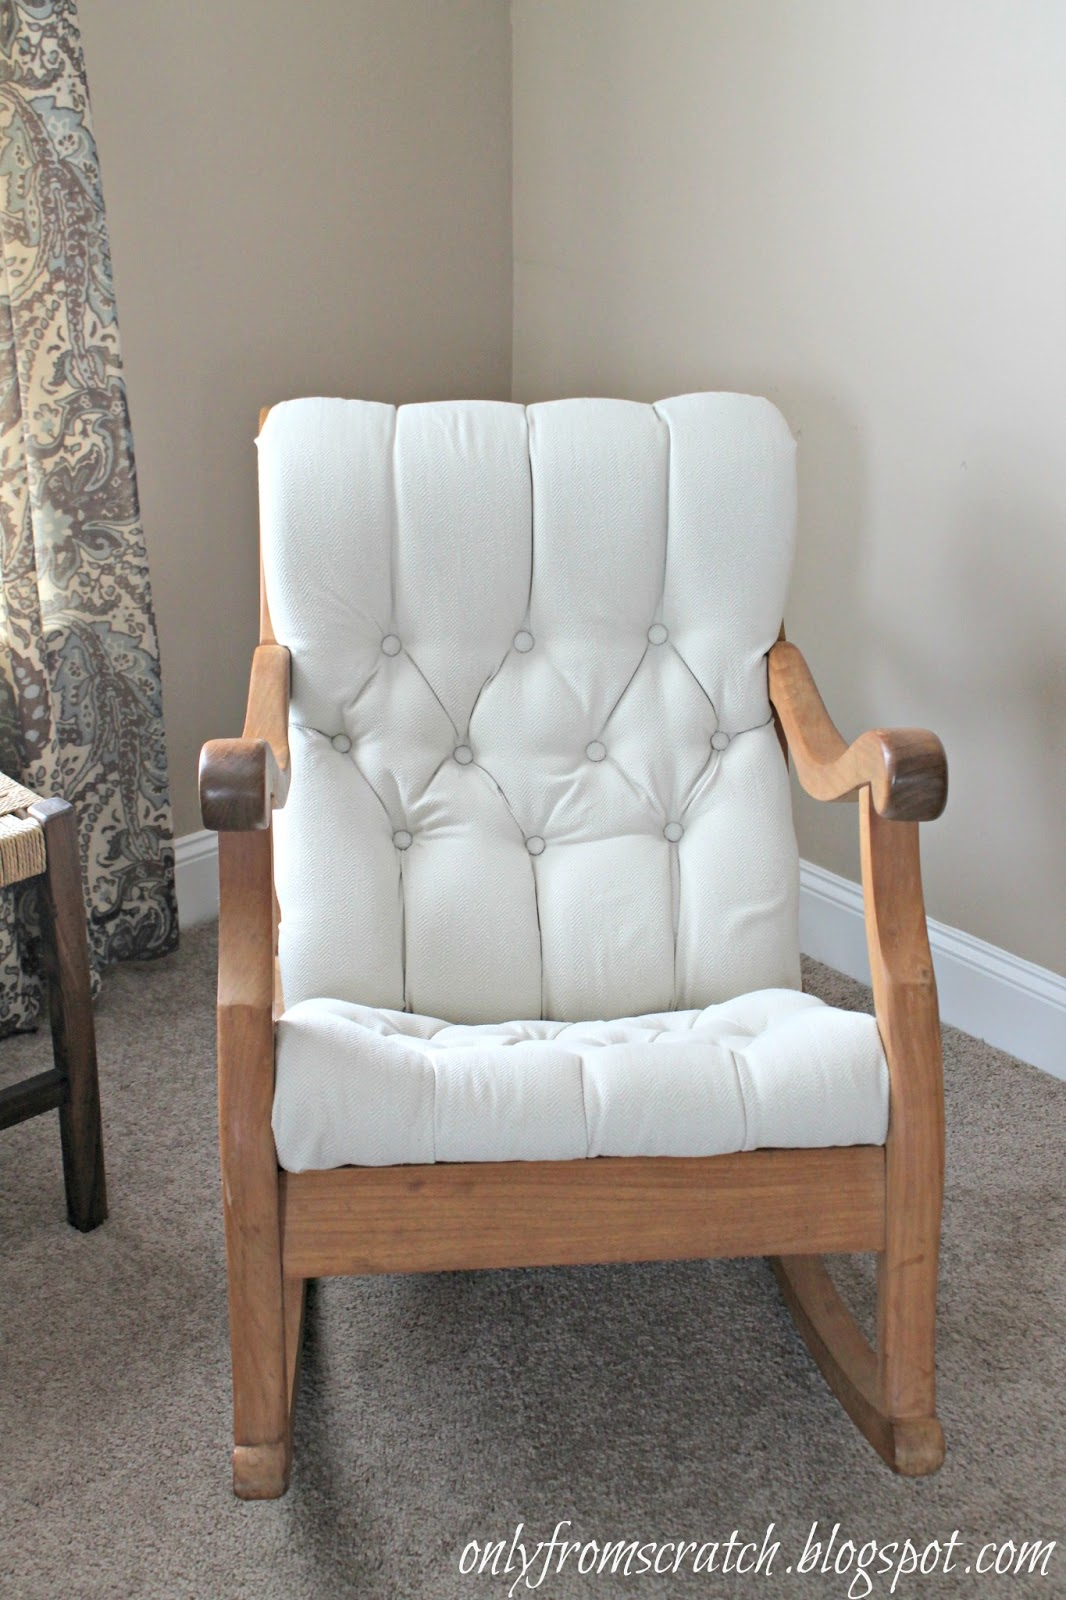 Nursery rocking chair a great furniture for